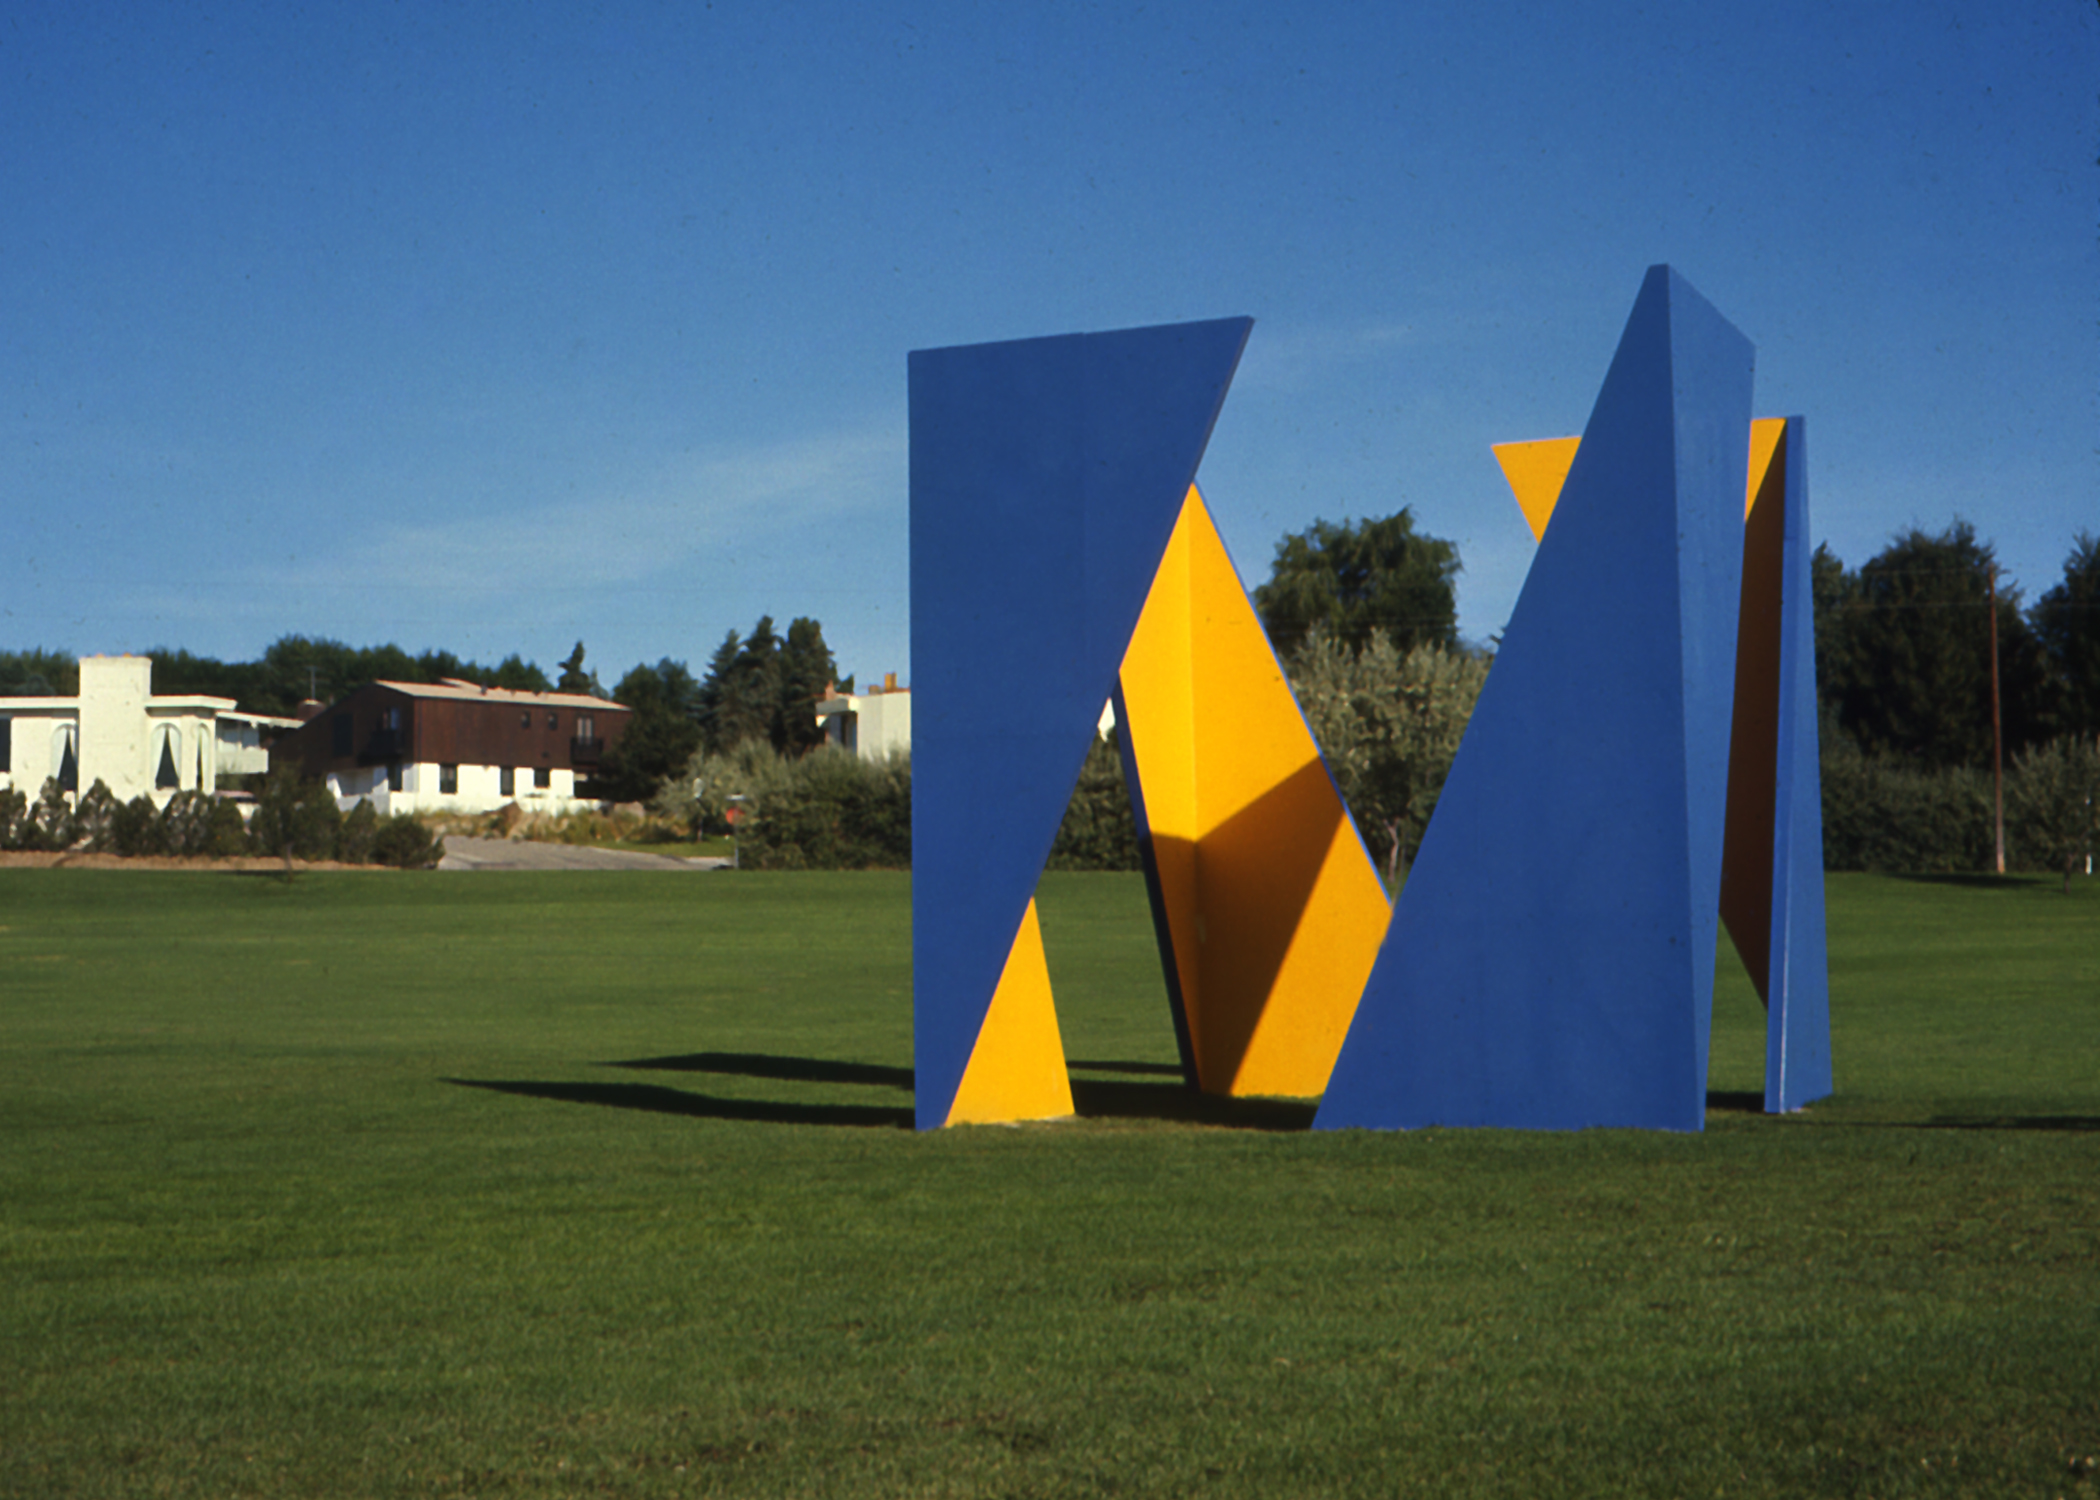 Go to the Untitled (Blue, Yellow Open Cube) page